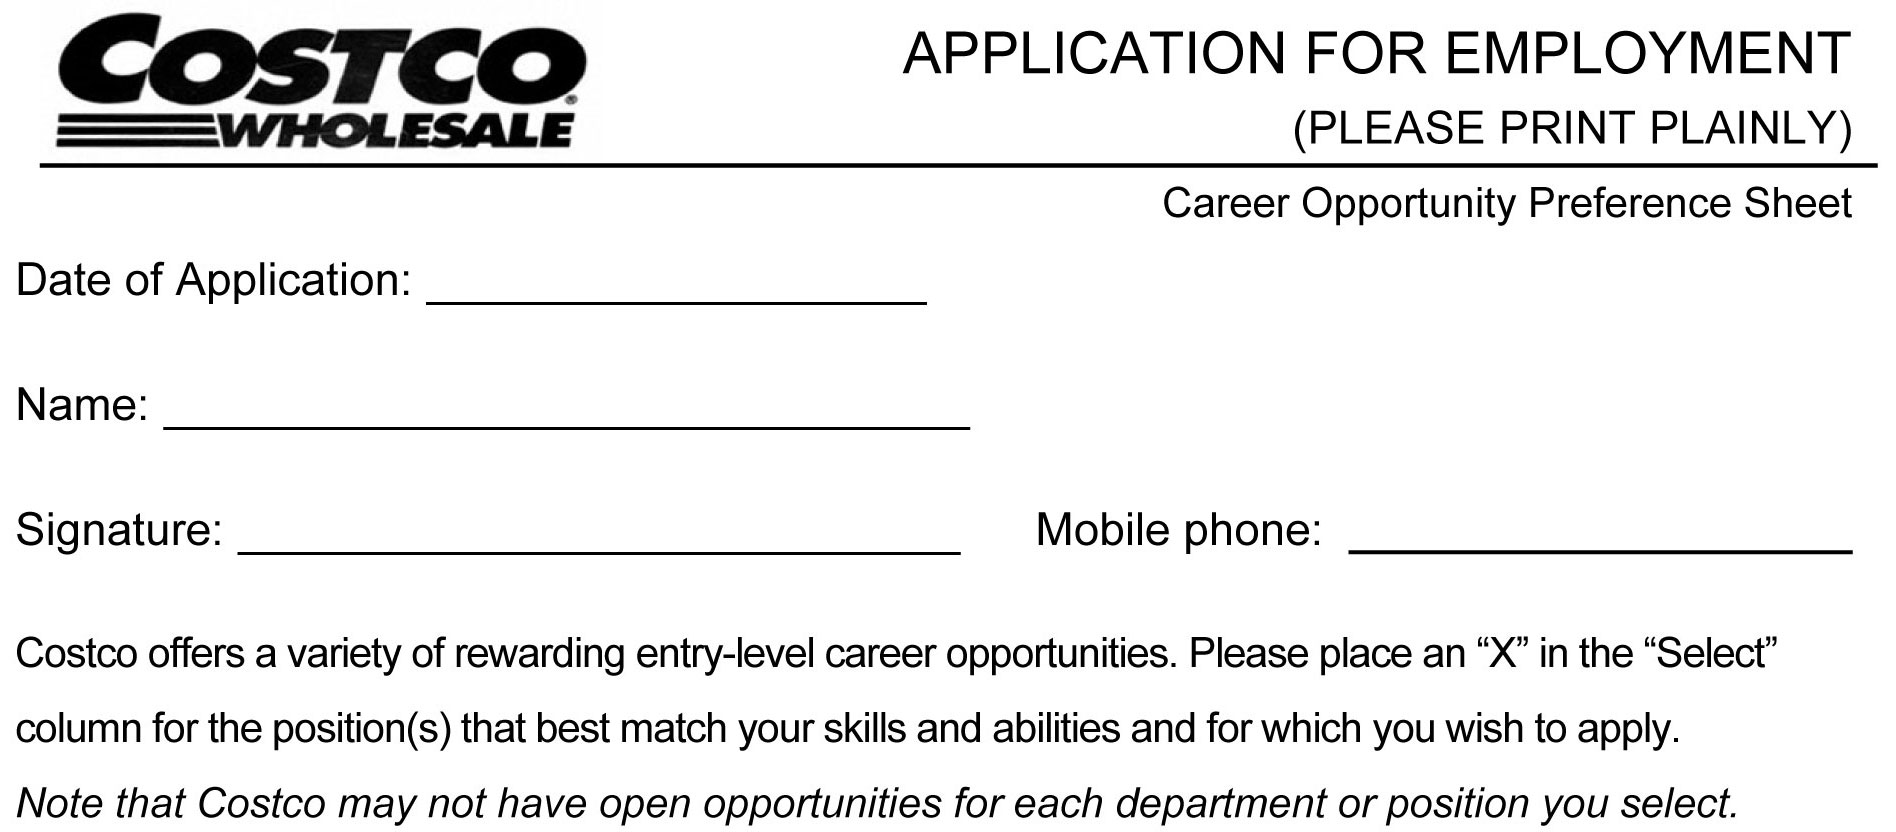 costco job application printable job employment forms costco job application